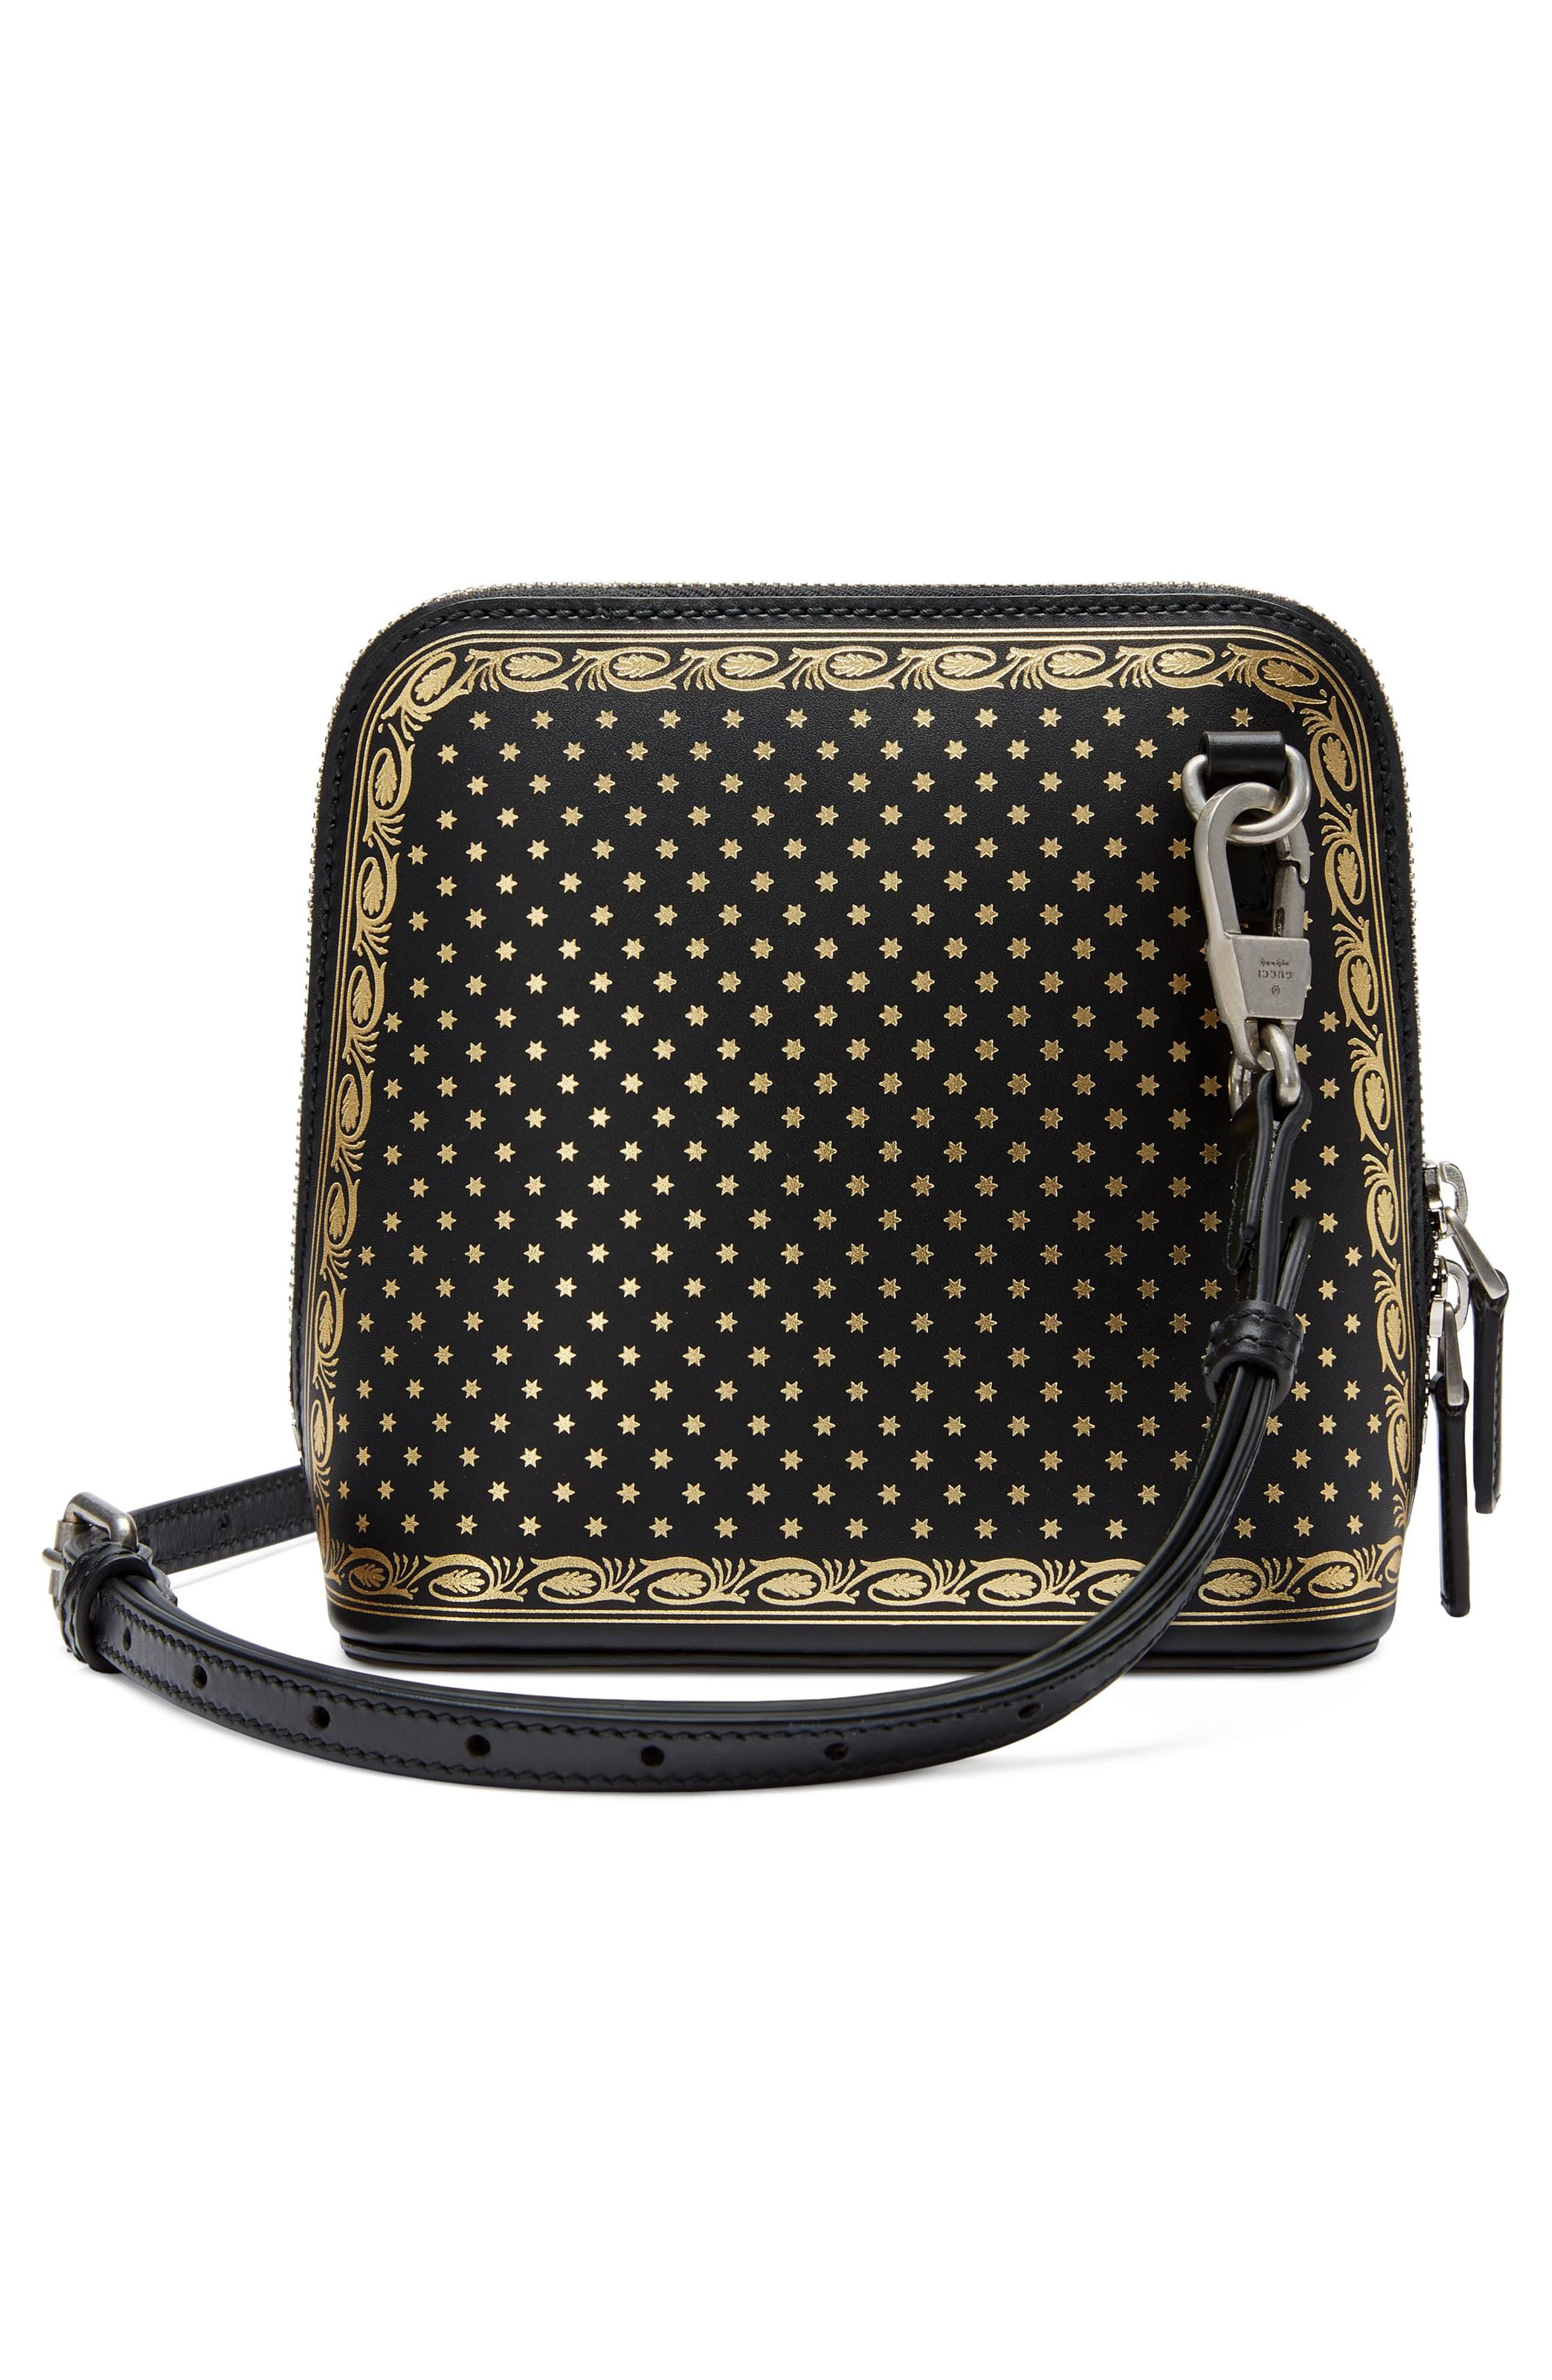 68a9b086afbc47 Gucci Guccy Logo Moon & Stars Leather Crossbody Bag - in Black ...